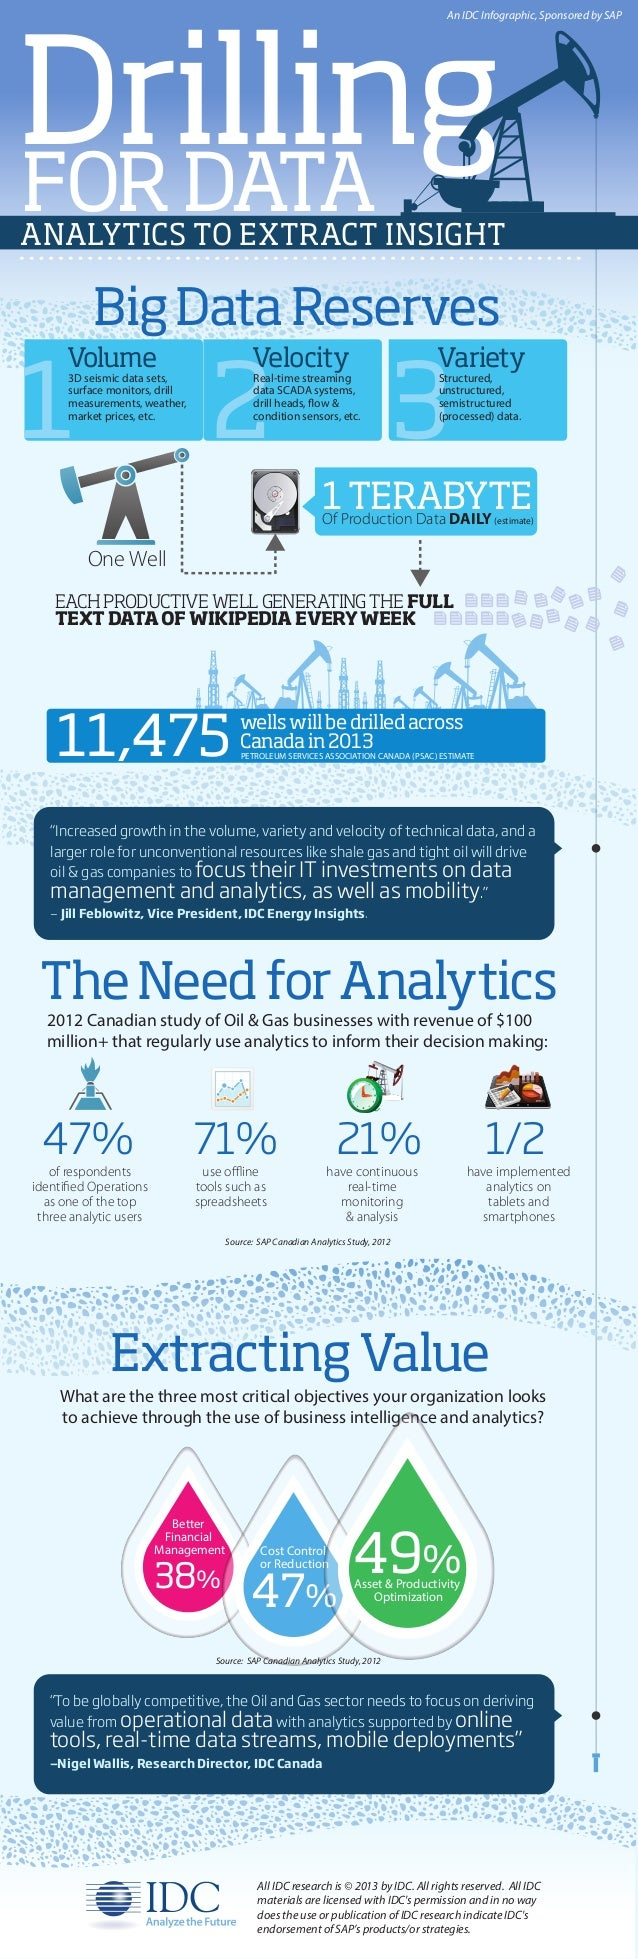 Drilling for Data: Analytics to Extract Insight Infographic